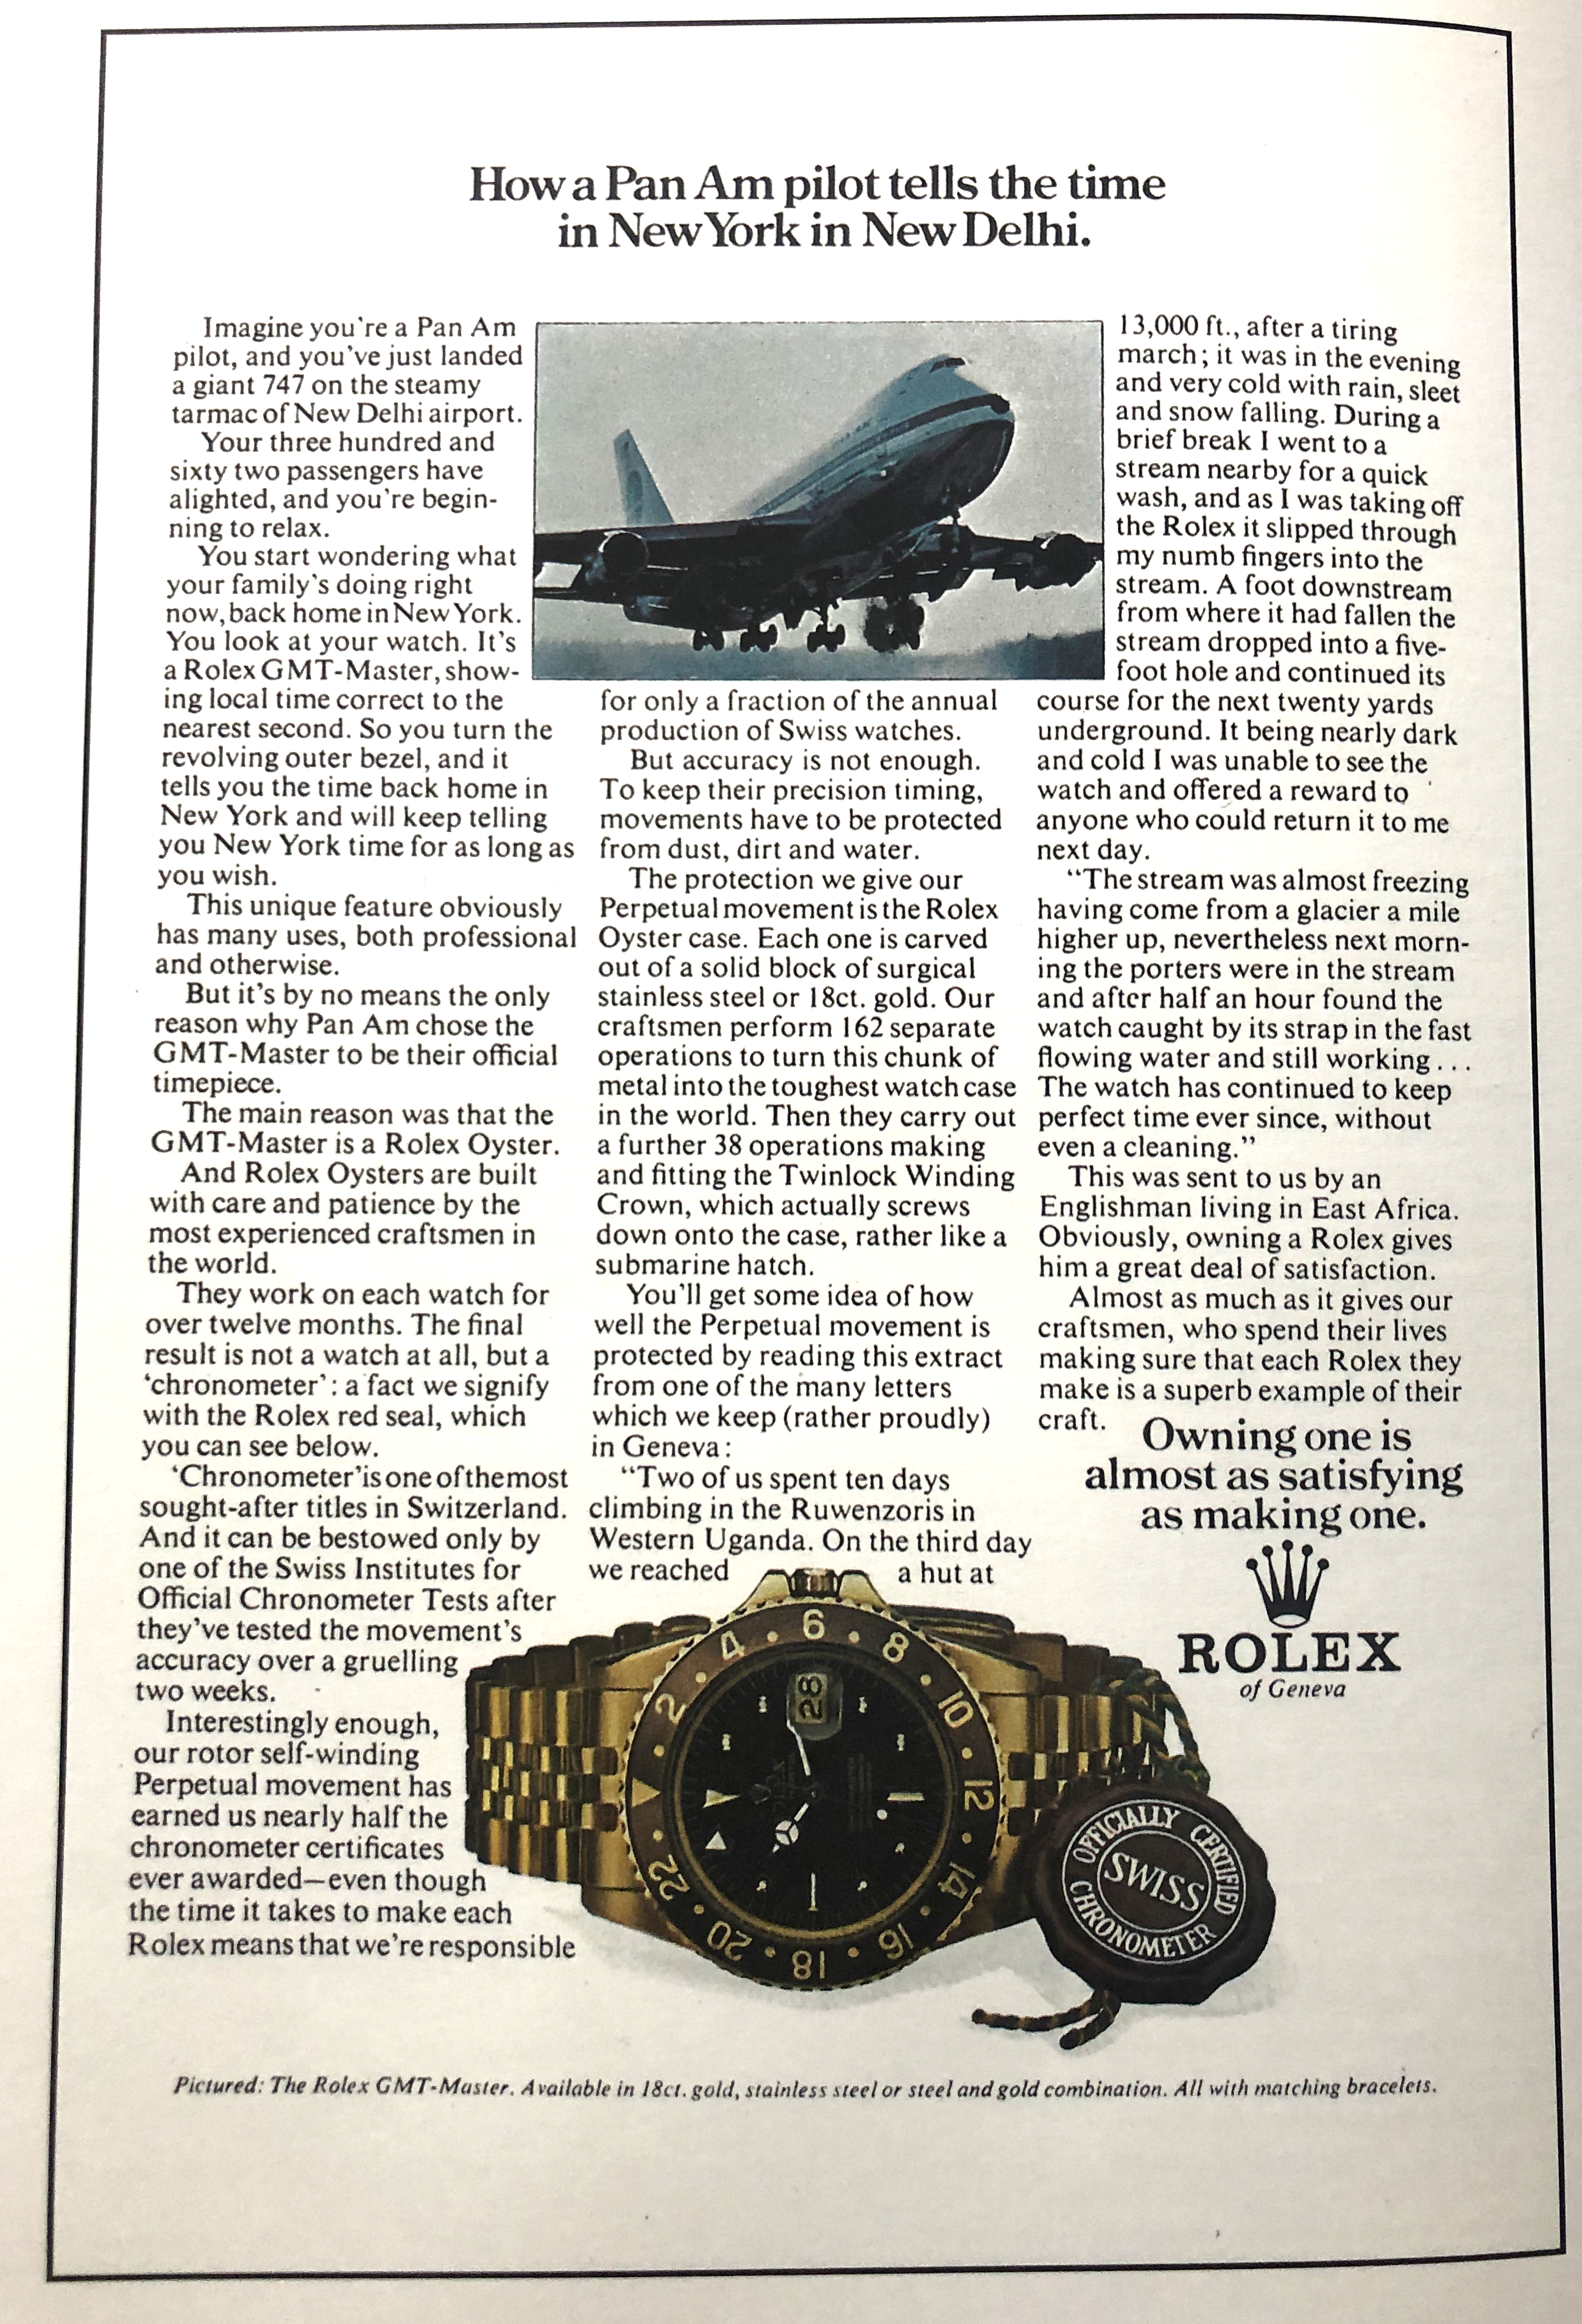 Ad featuring a 747 and a 1675